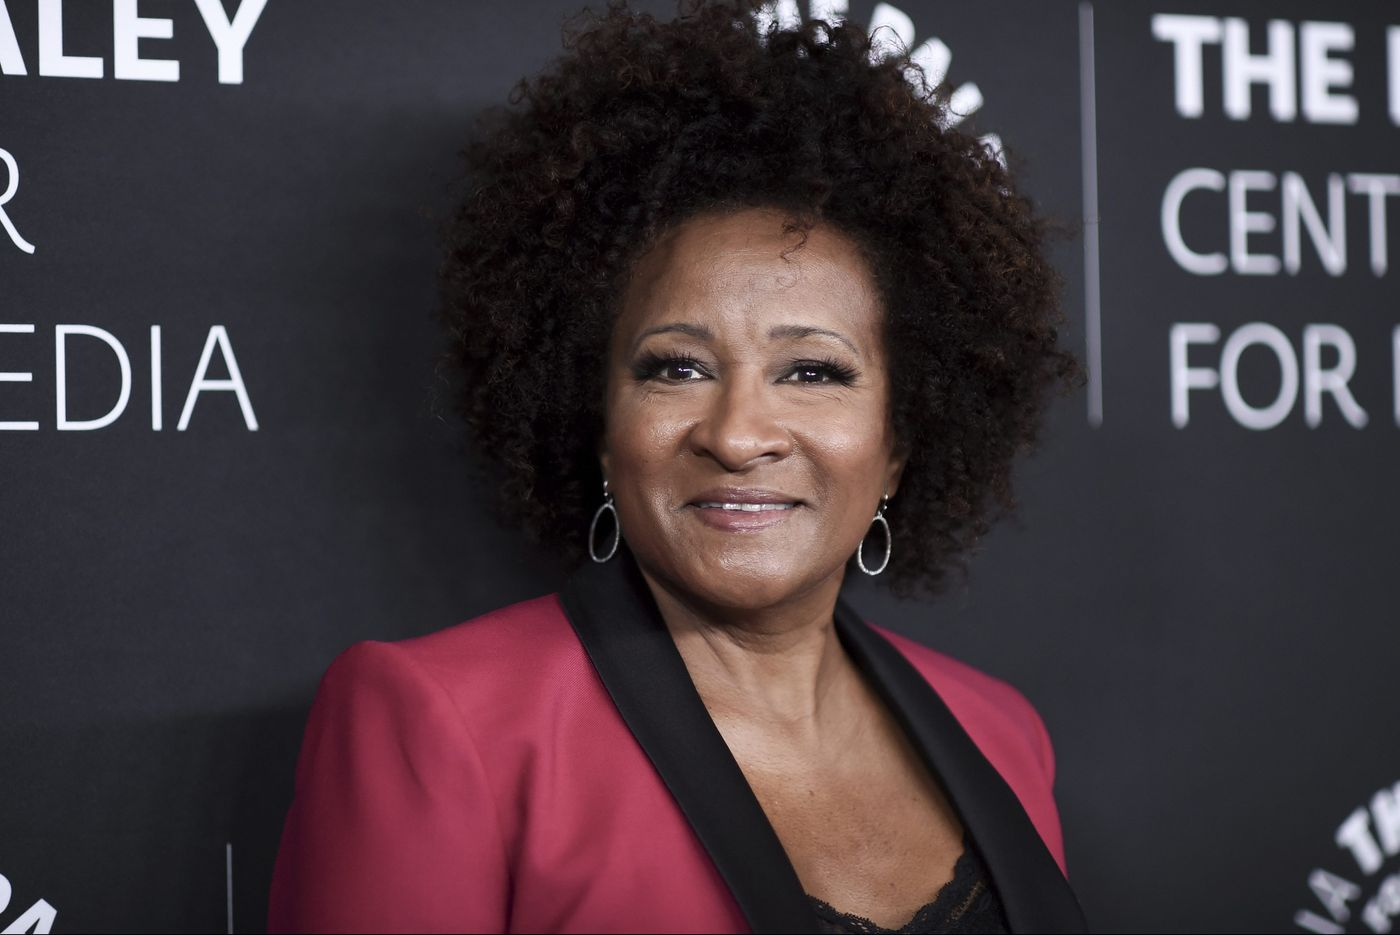 Wanda Sykes, who quit Roseanne after the star's racist tirade, has one request for the new 'The Conners'